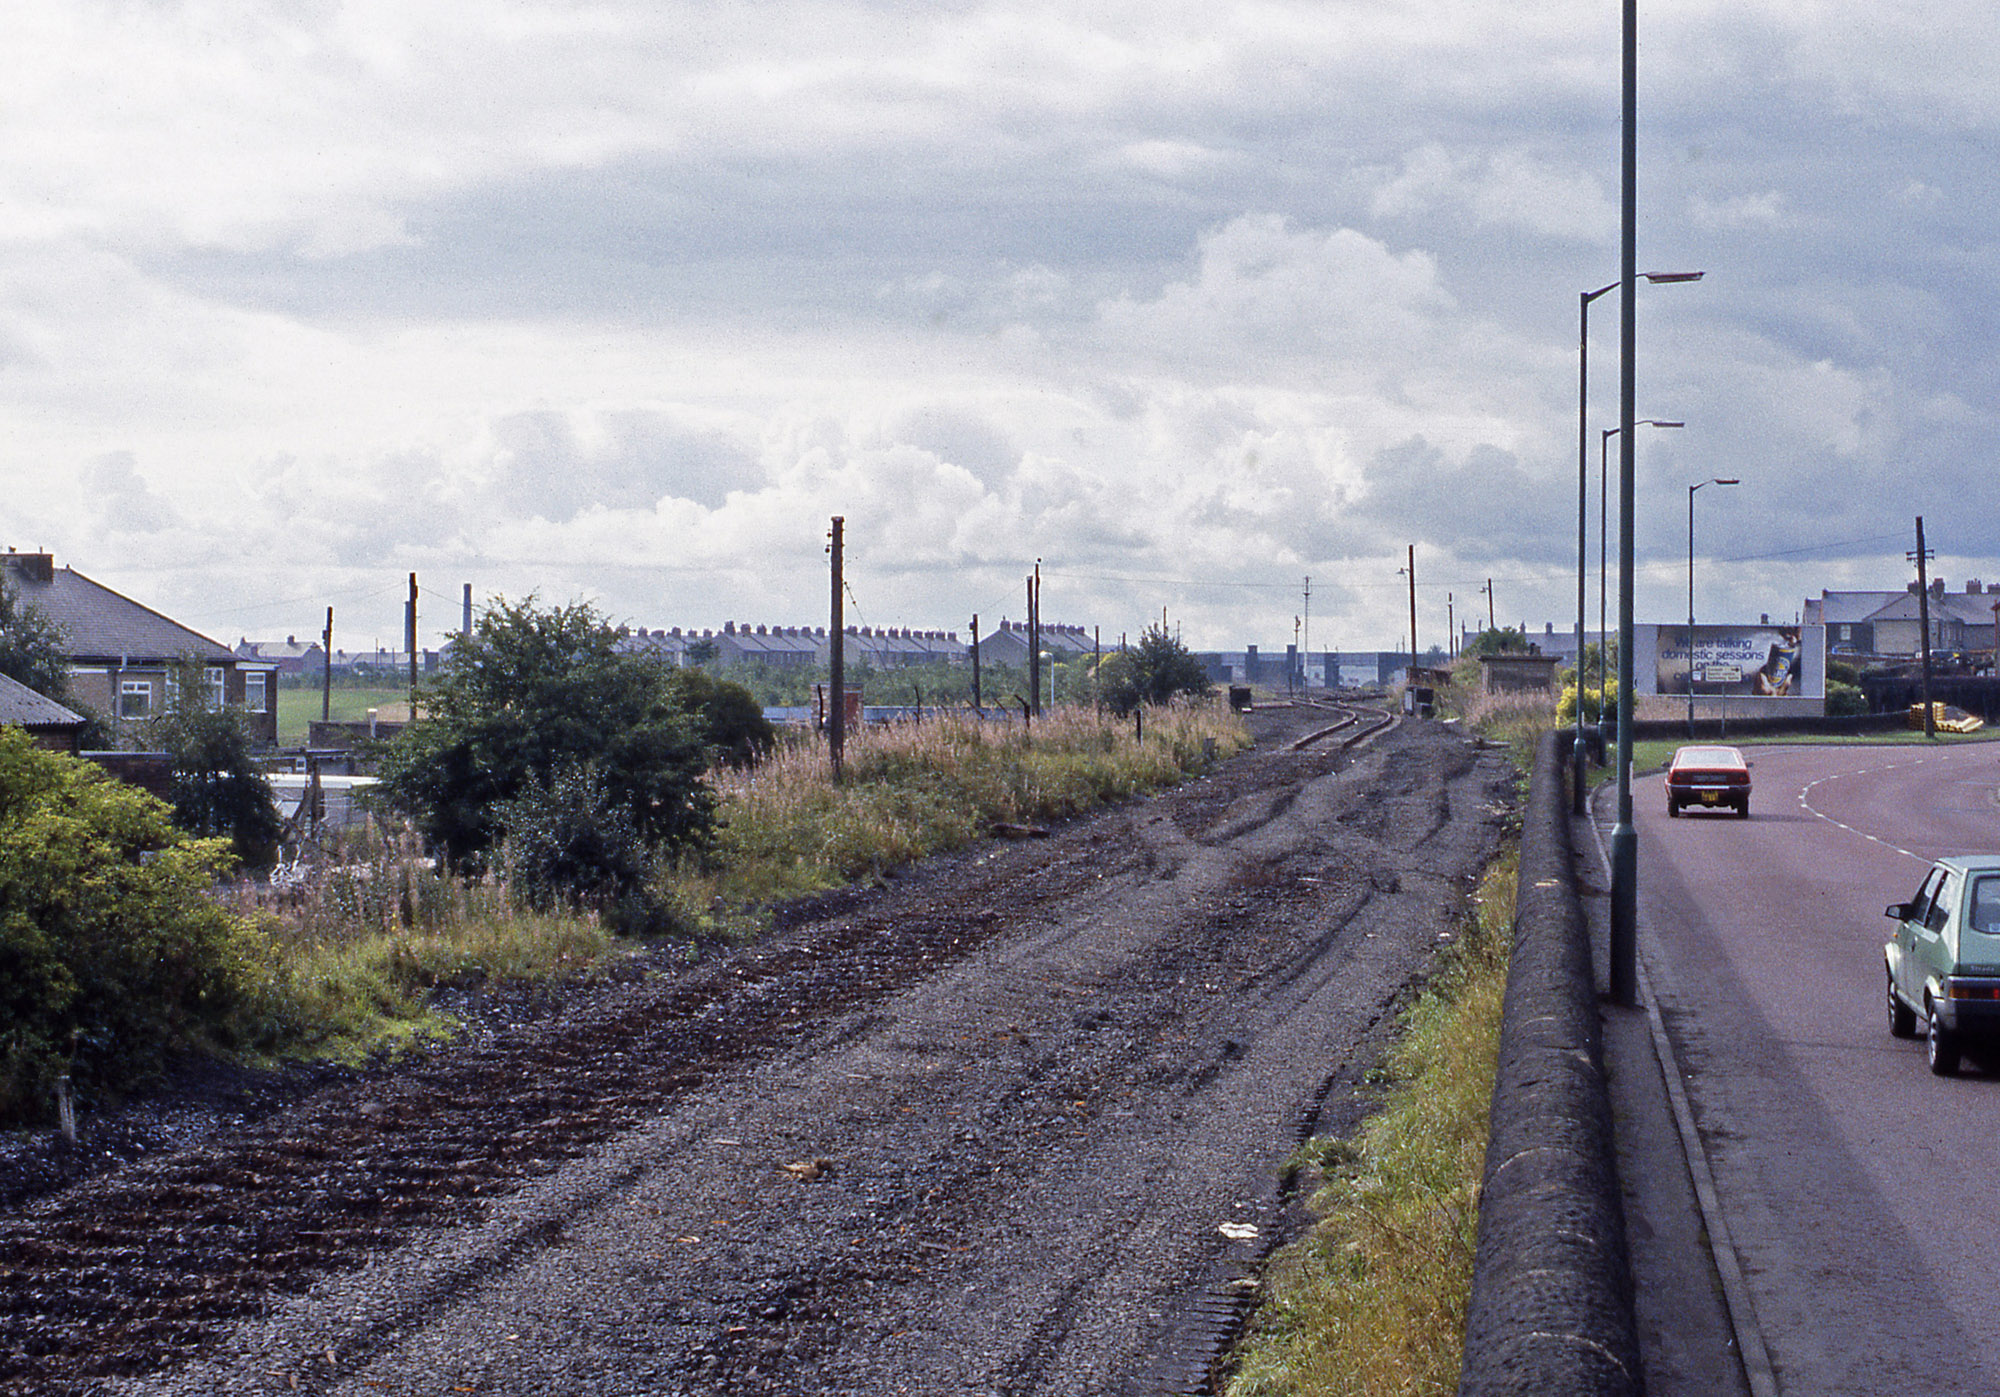 Consett is finally disconnected from the rest of the rail network on 25 September 1984. Photo copyright Stephan McGahon